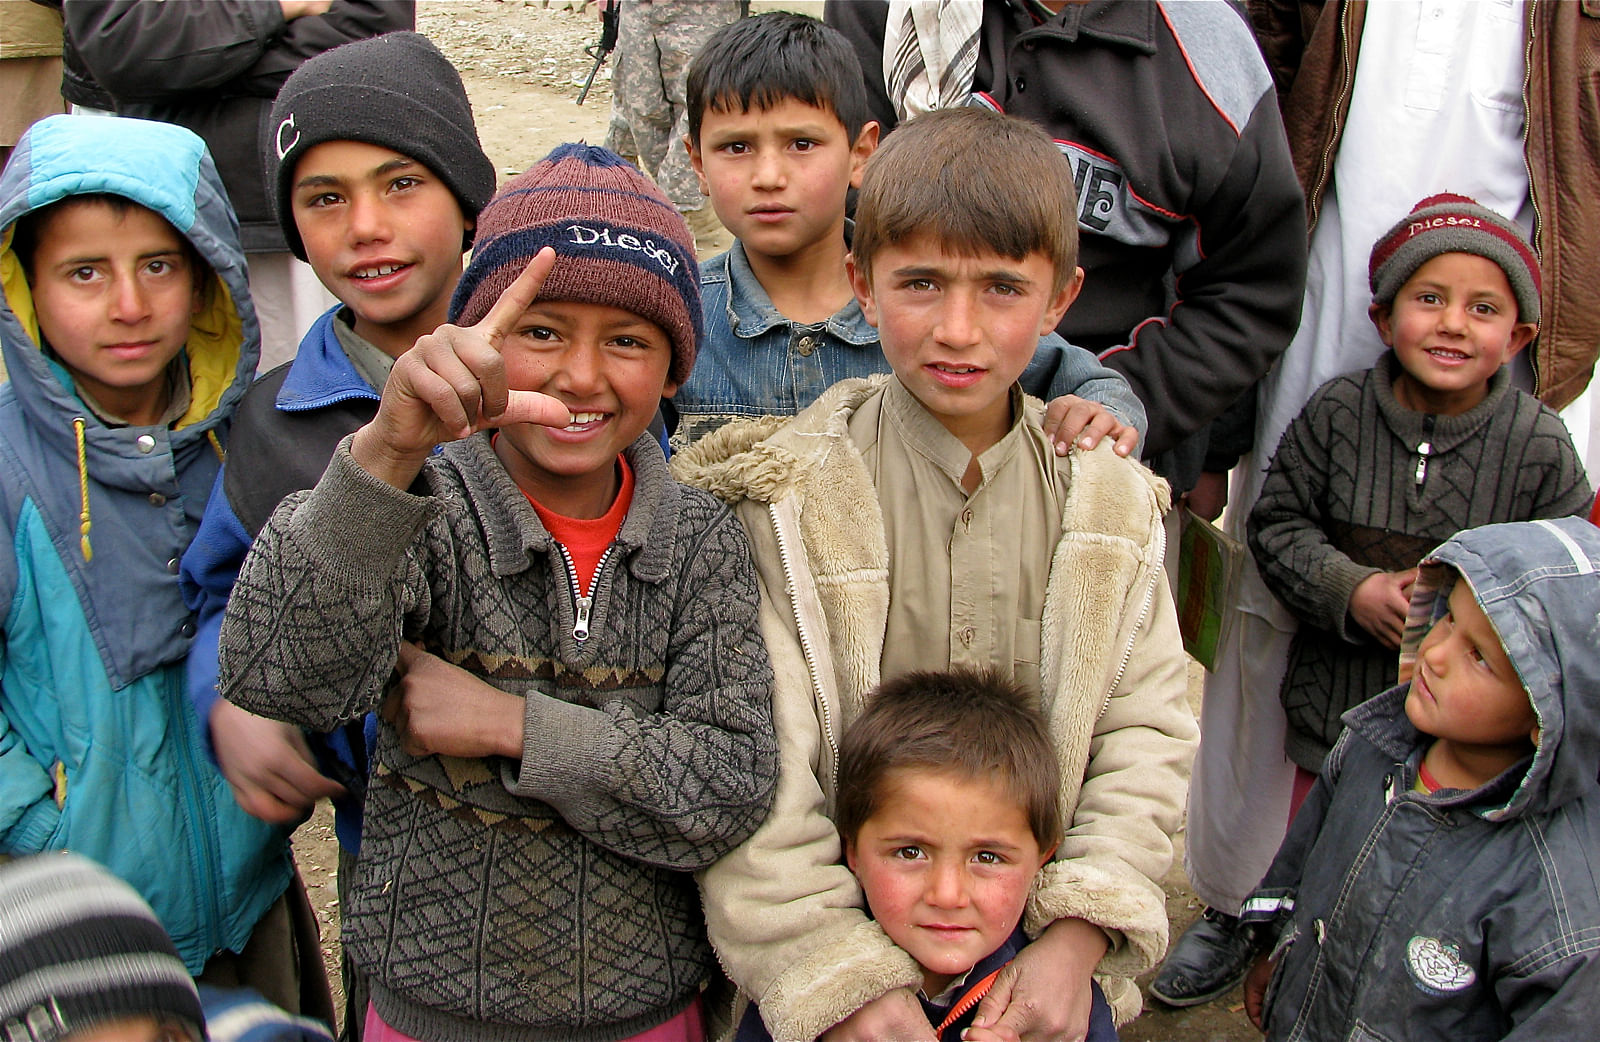 afghan boys afghanistan children taliban india heart diseases honey treatment police trap kabul help indian treating country suffering kill hole